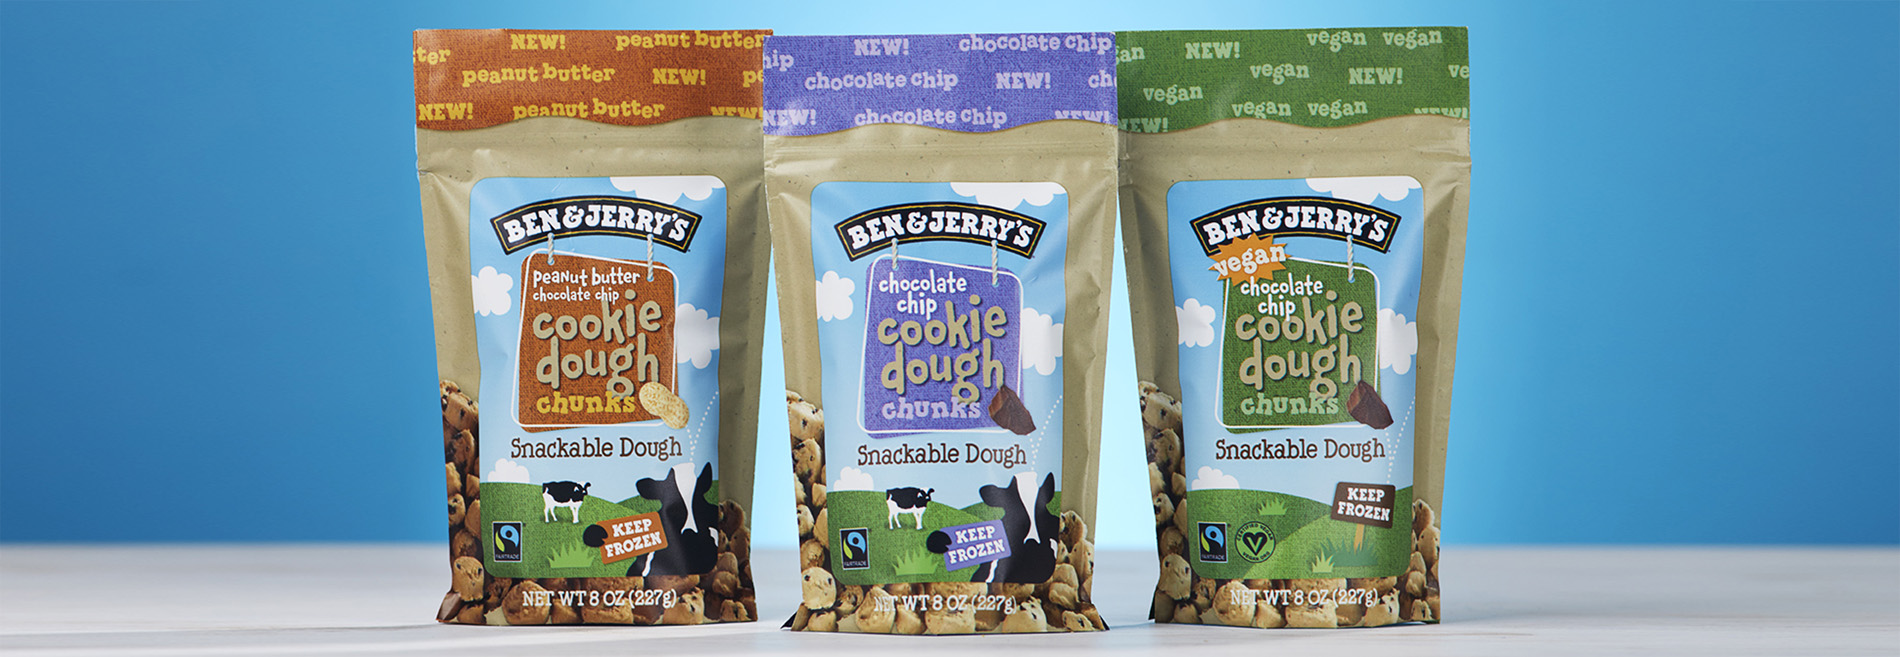 Flavors of Ben & Jerry's new cookie dough chunks